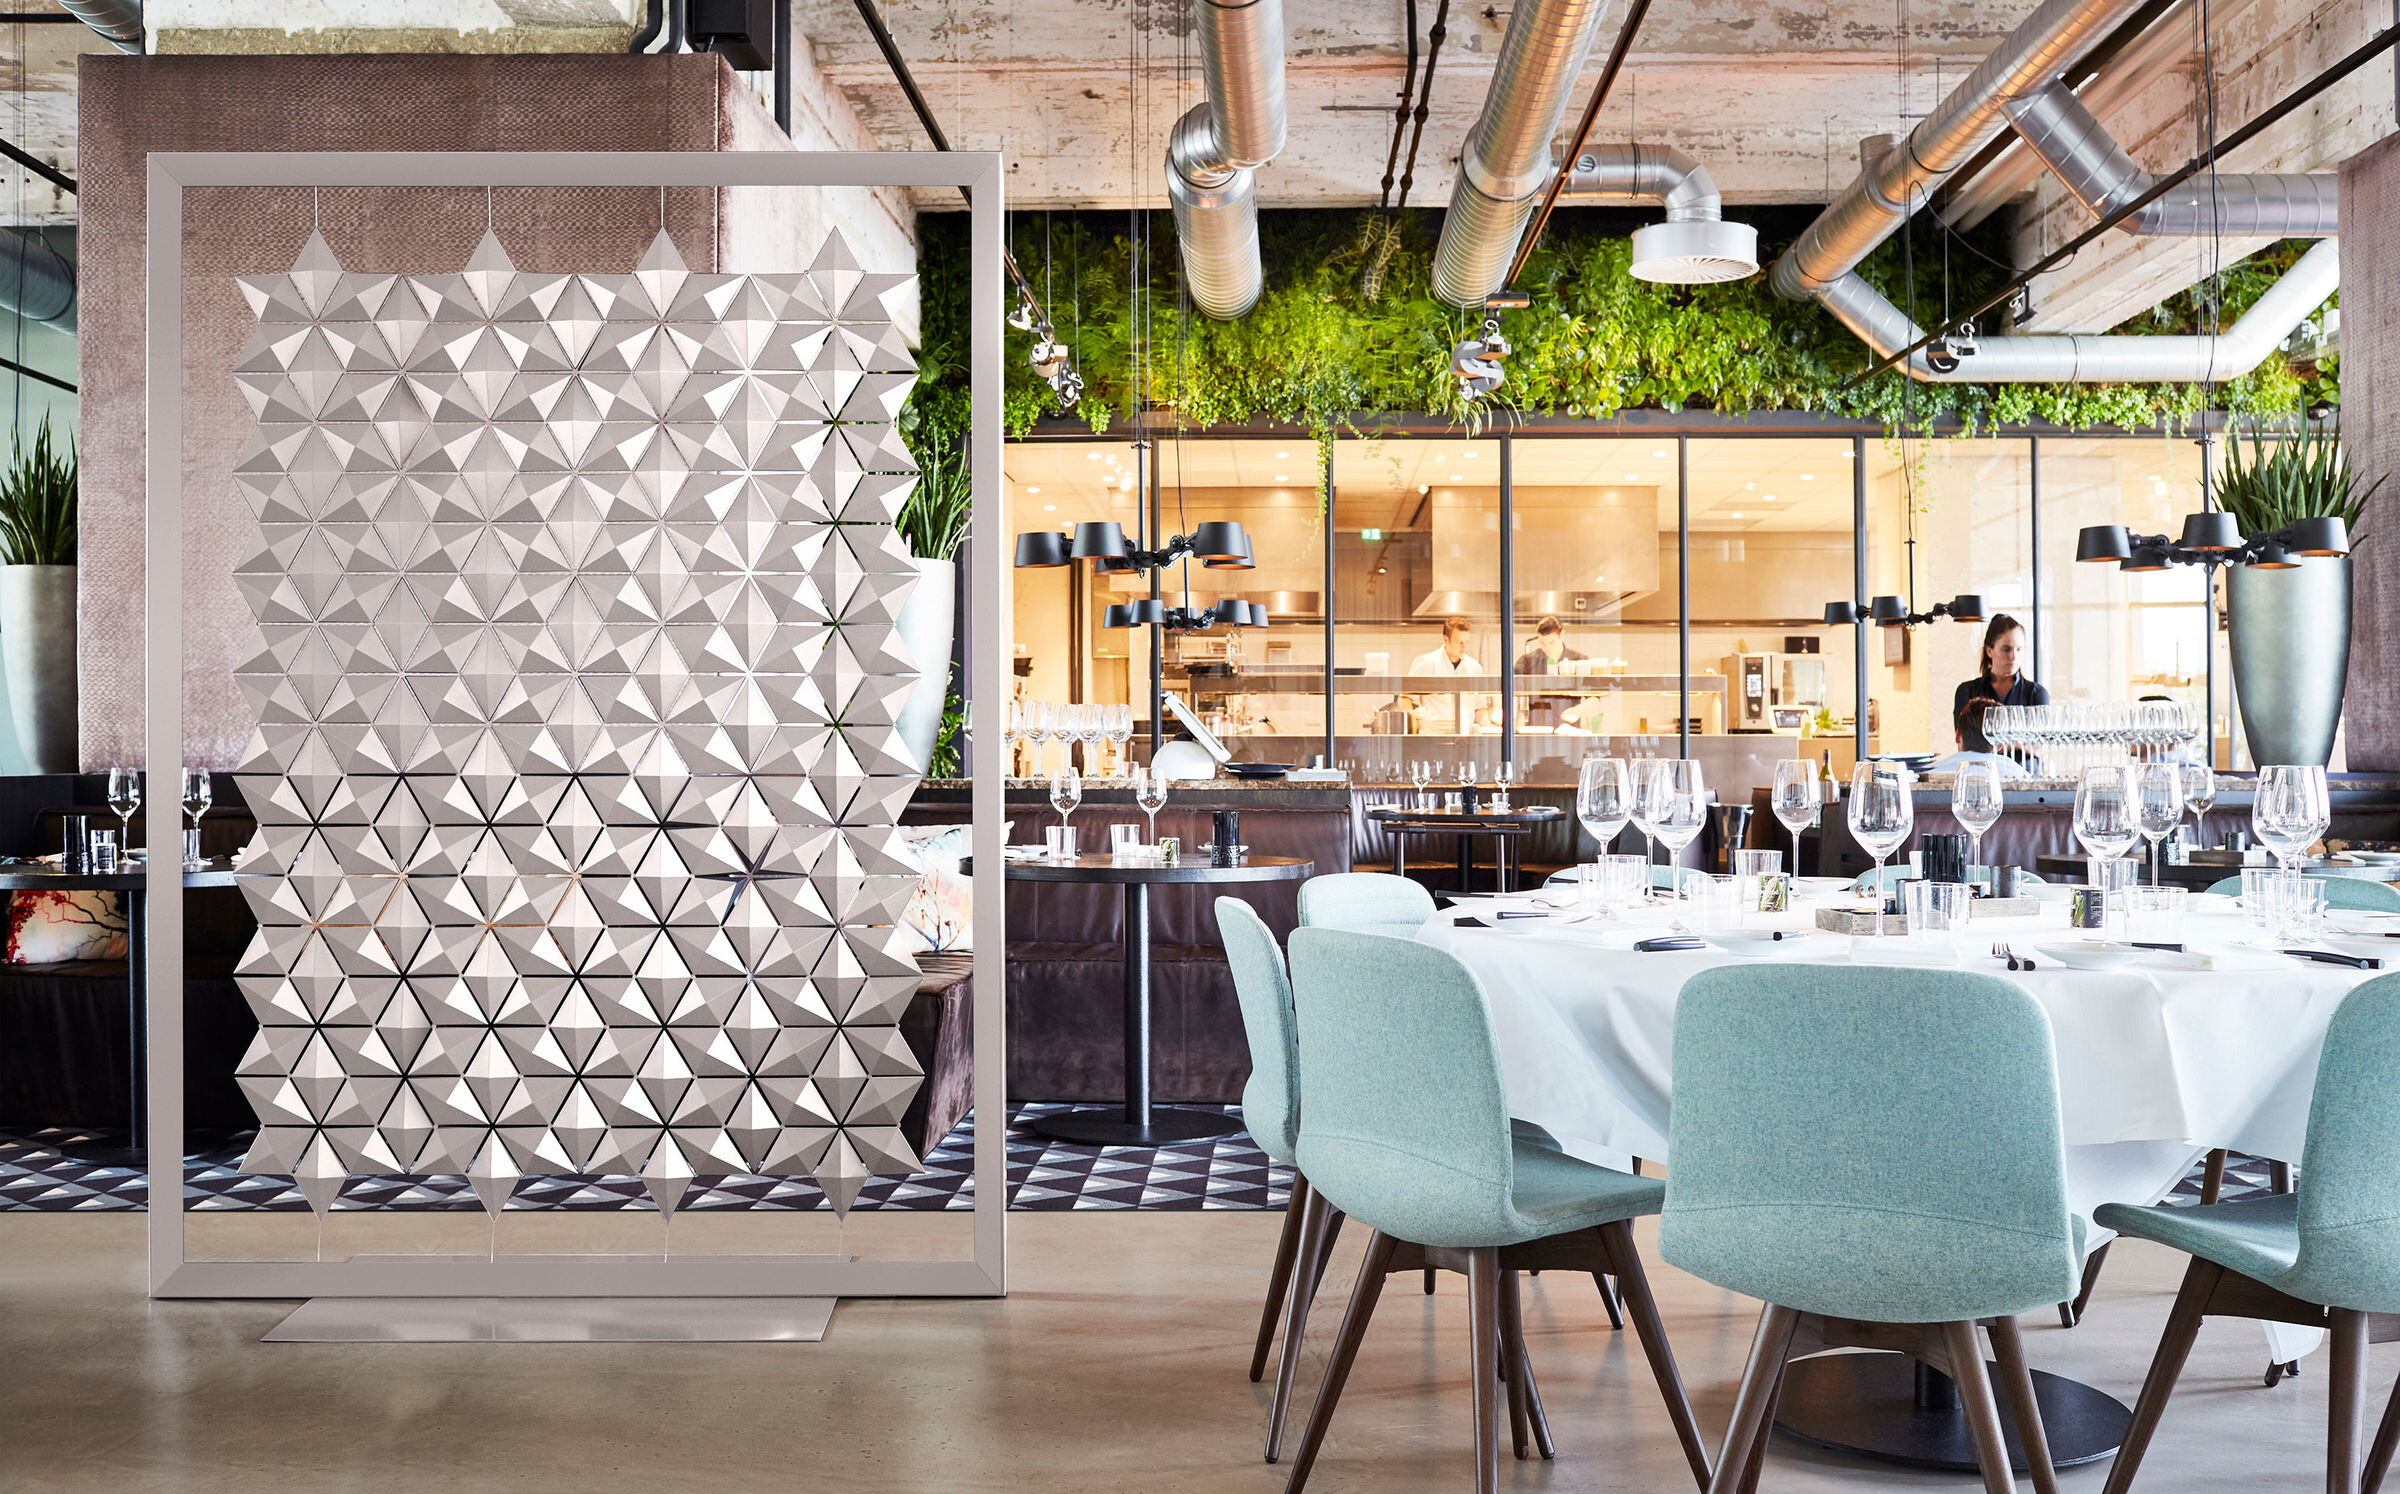 Freestanding restaurant divider Facet by Bloomming